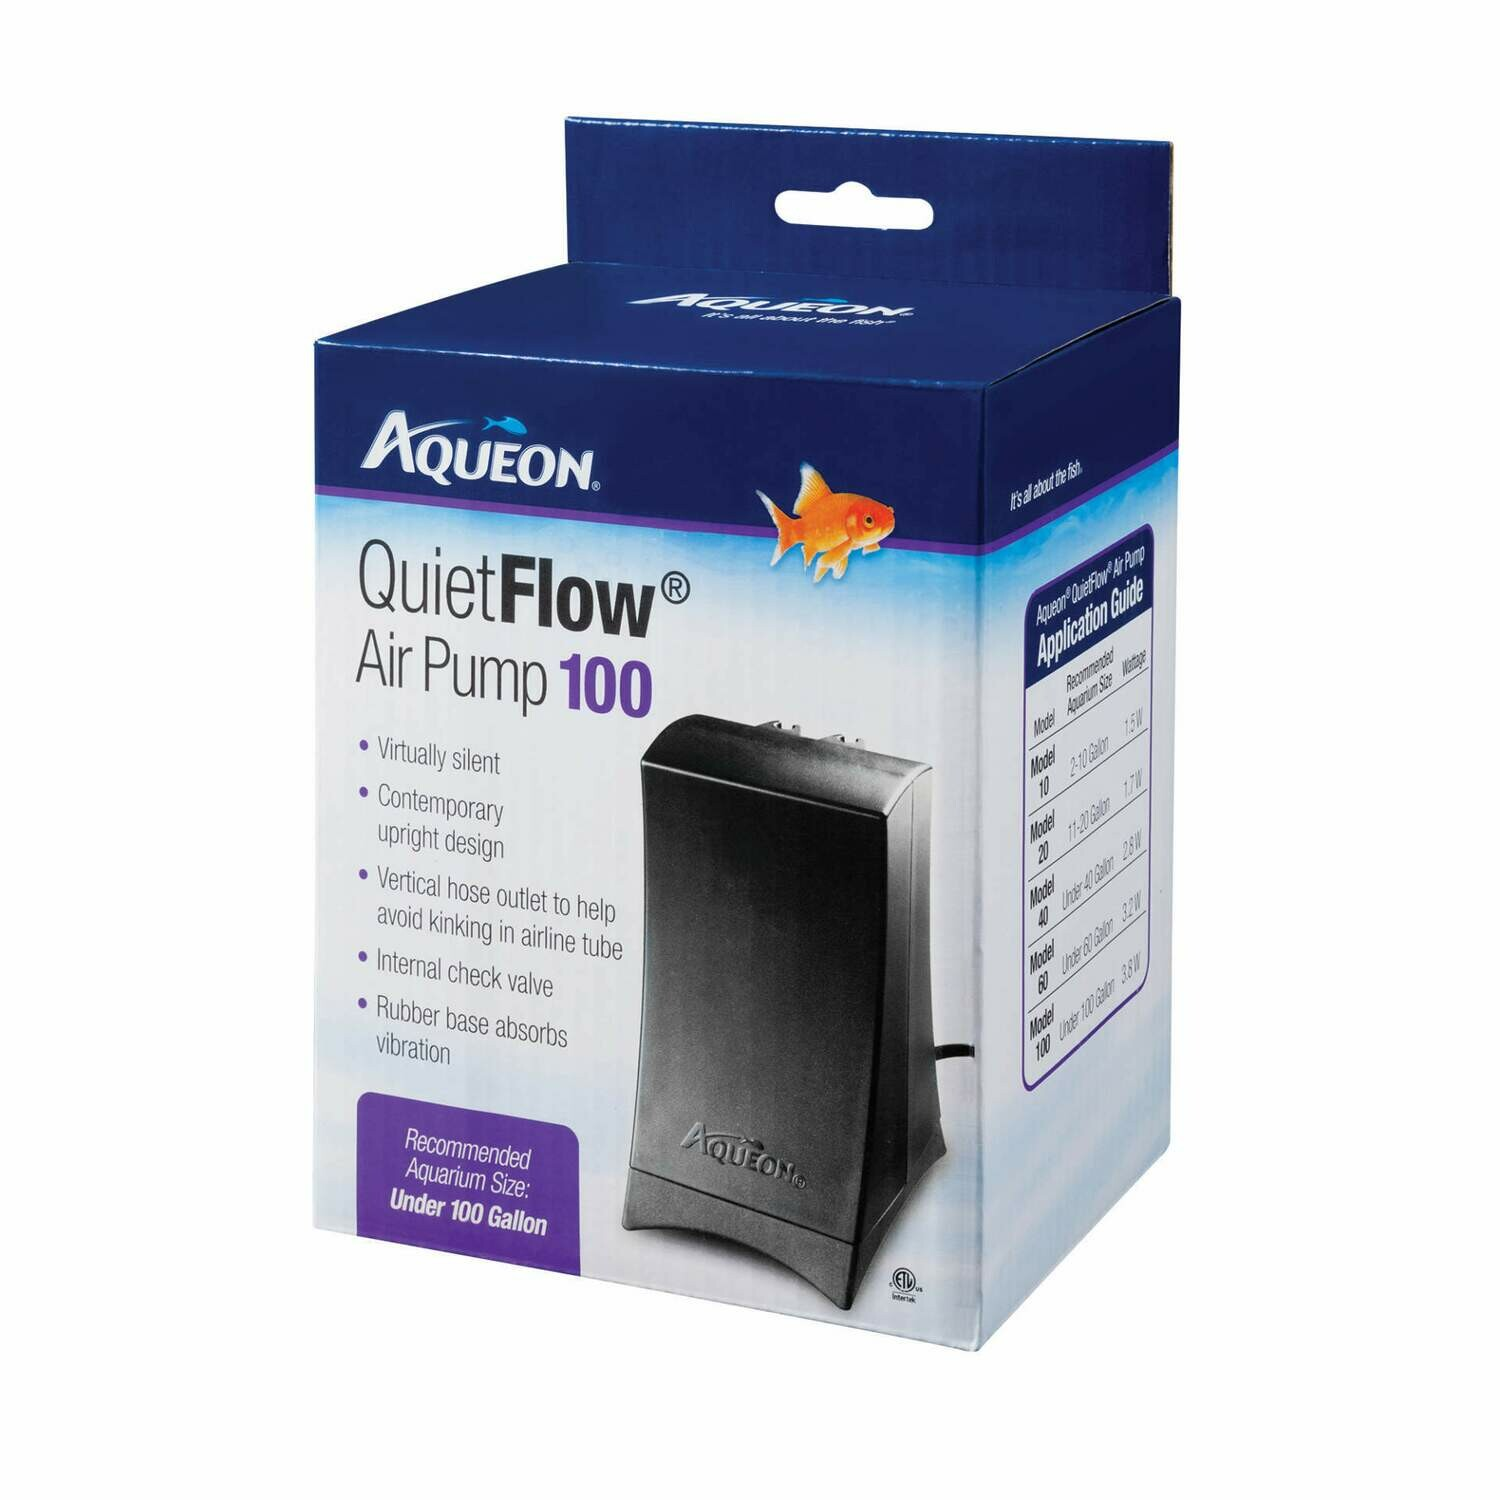 Aqueon QuietFlow Air Pump 100